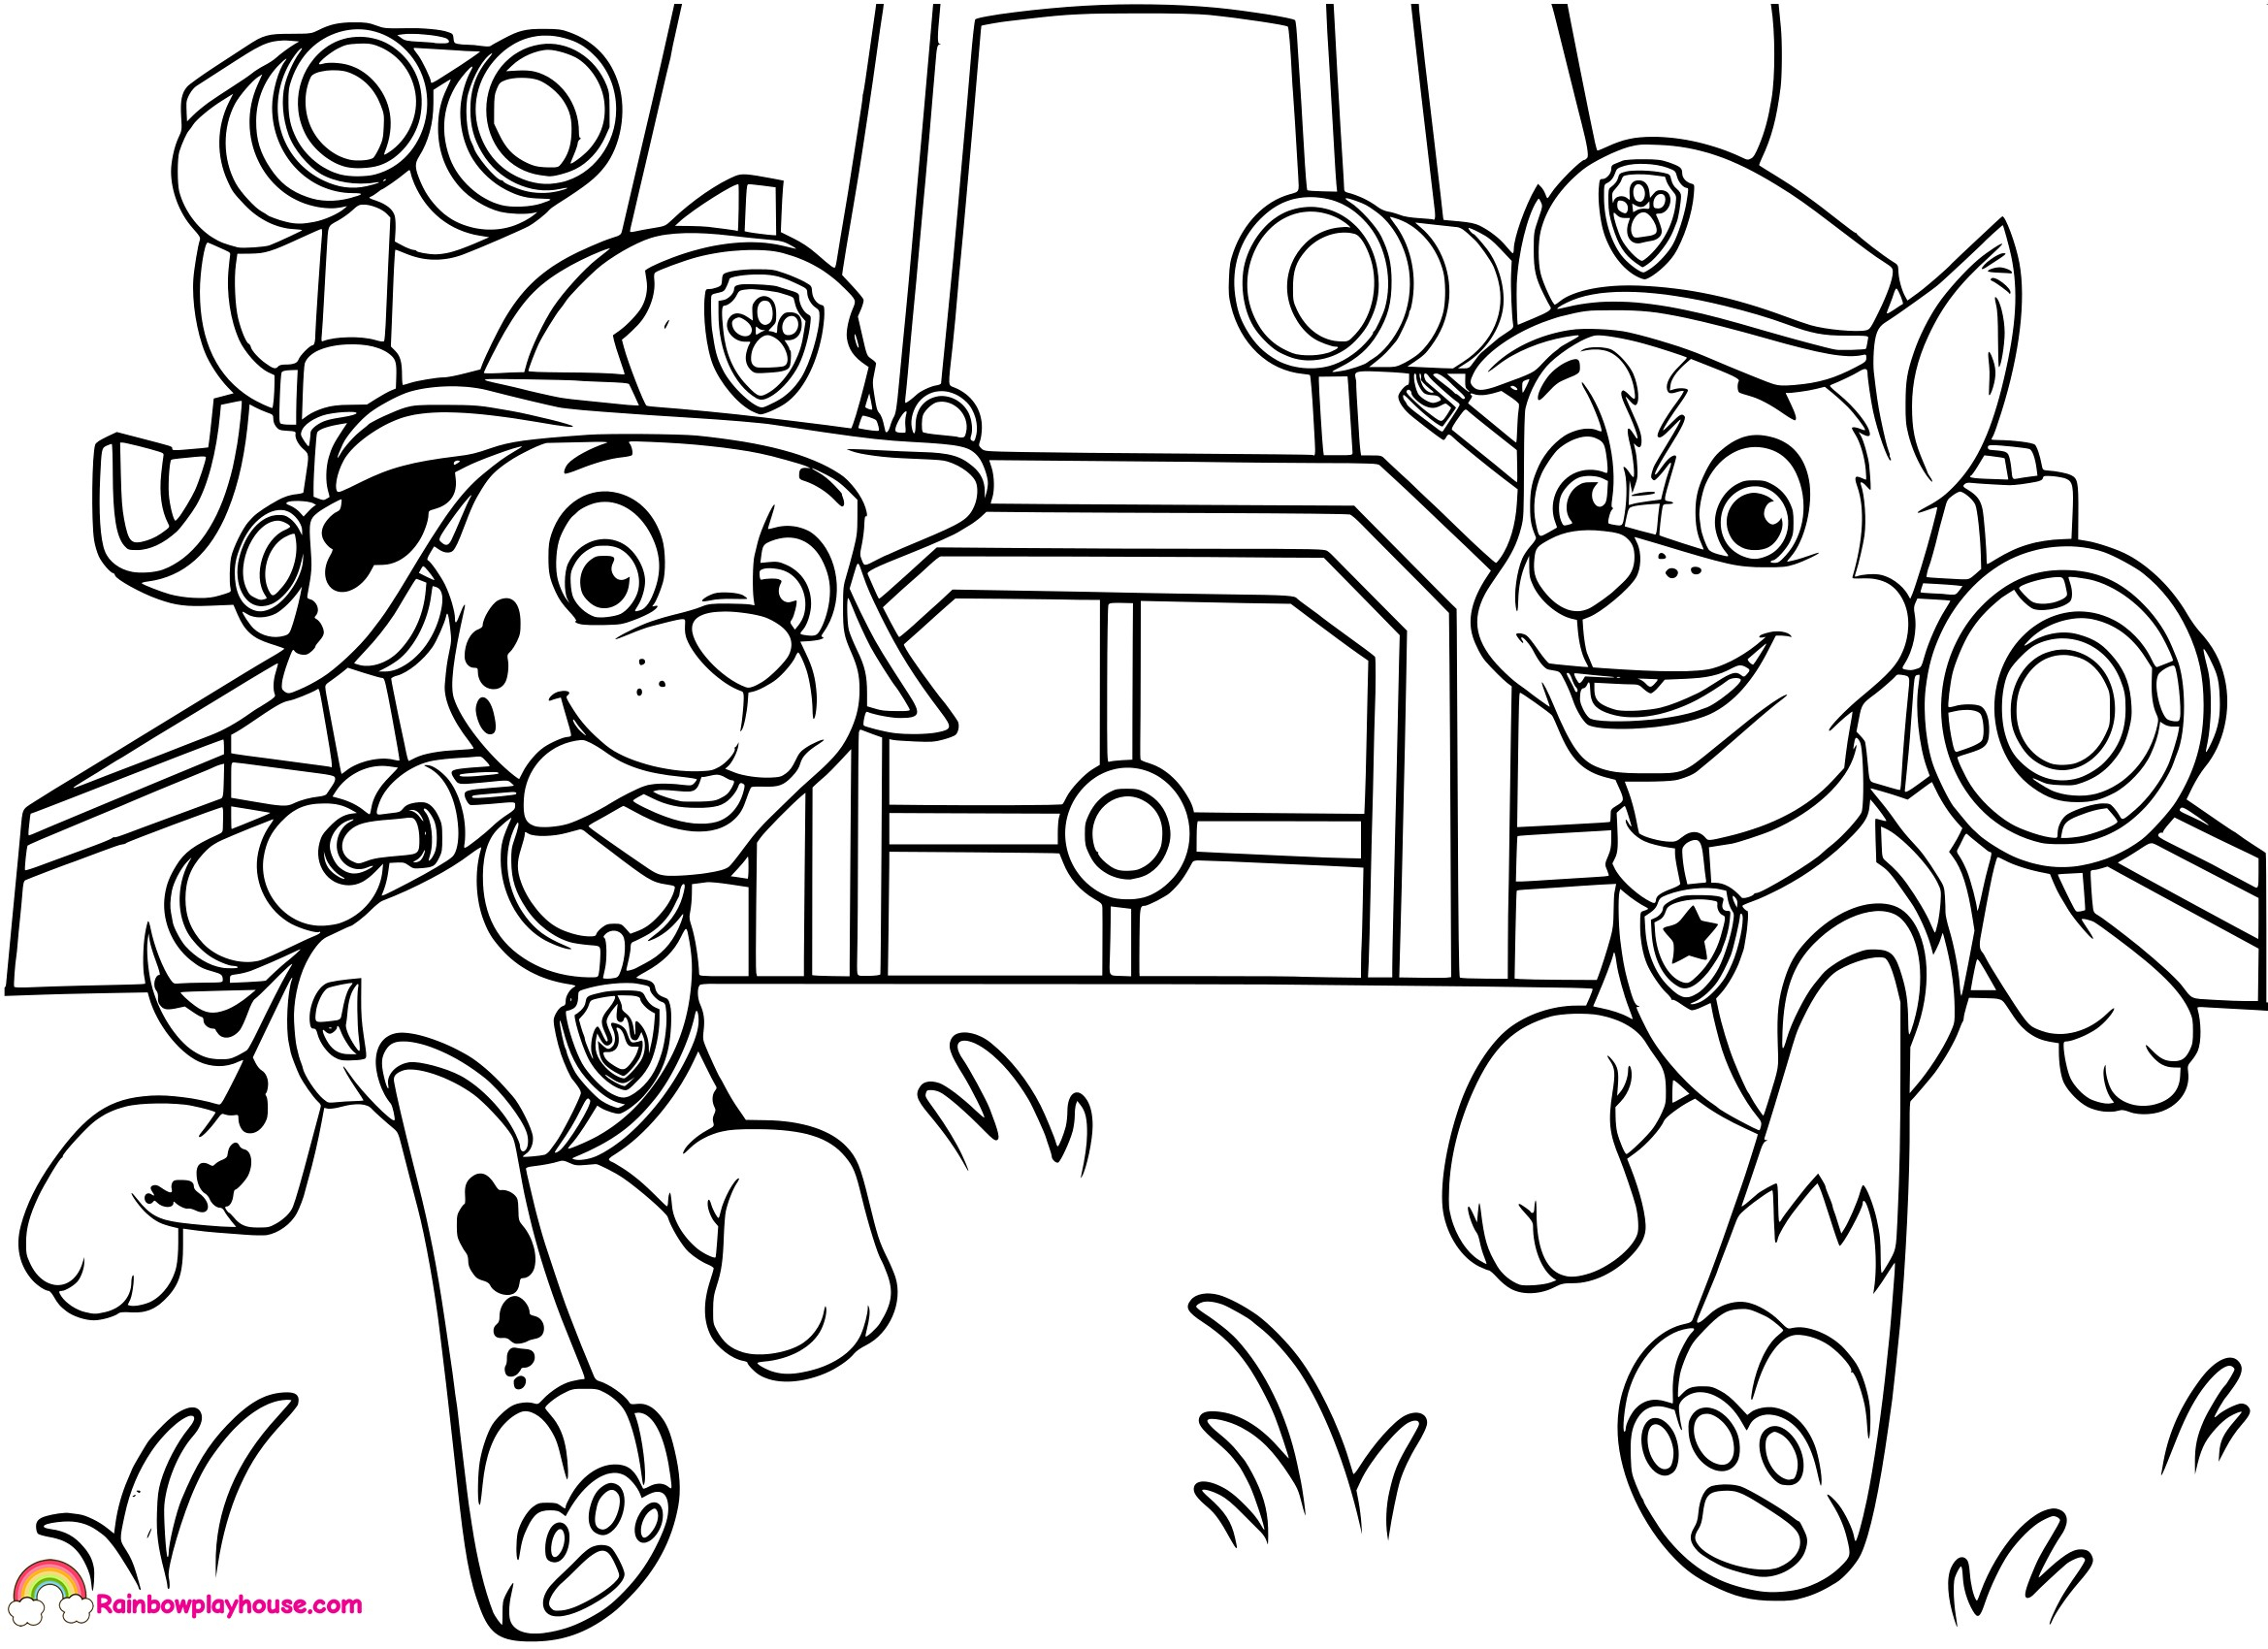 Marshall Paw Patrol Coloring Page Chase From Paw Patrol ...